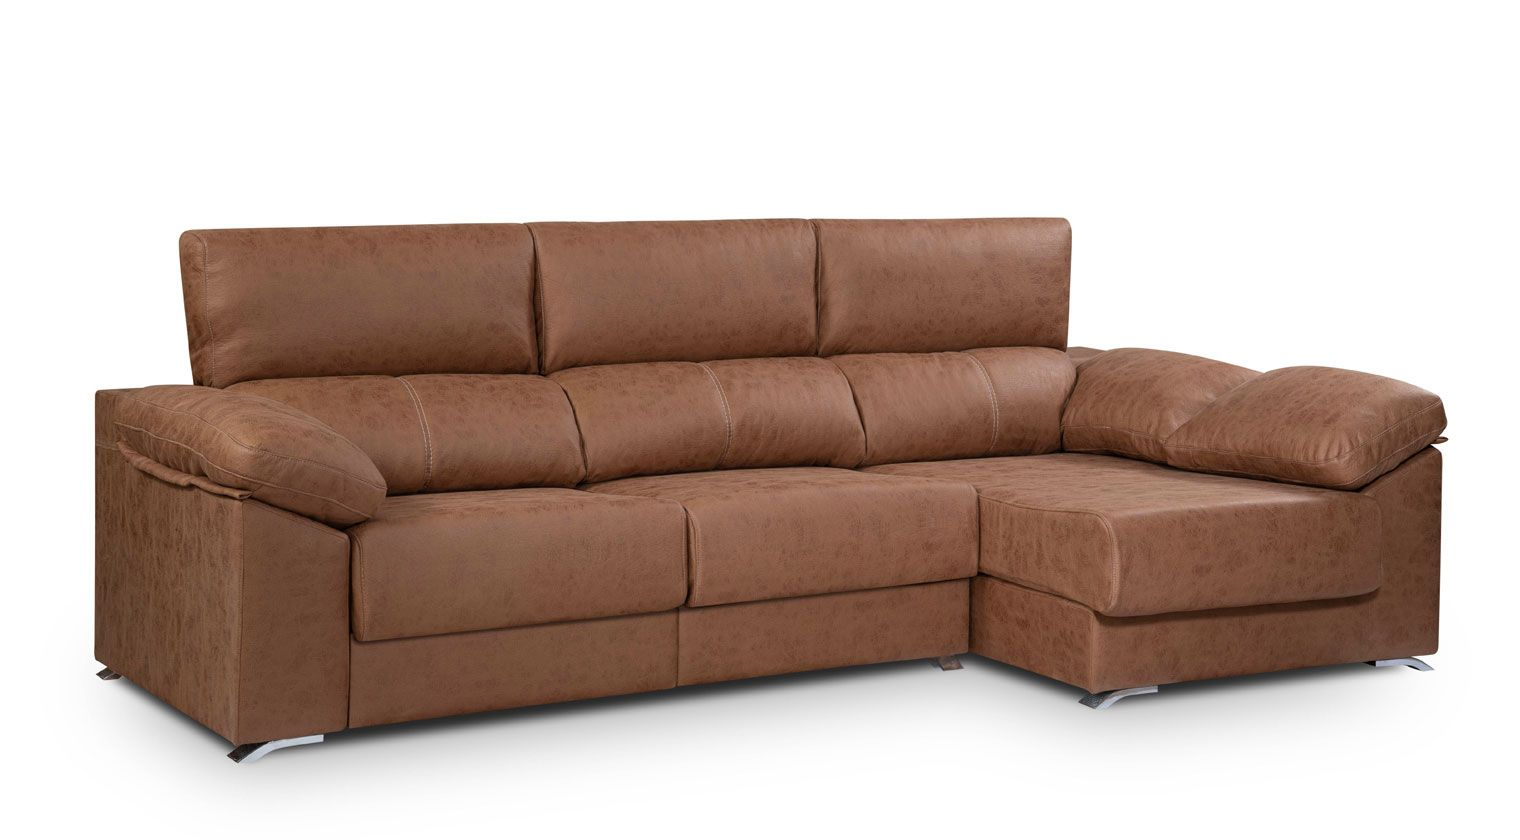 Comprar chaise longue tela lleida mod sofa 3 5 plazas for Sofas baratos alicante